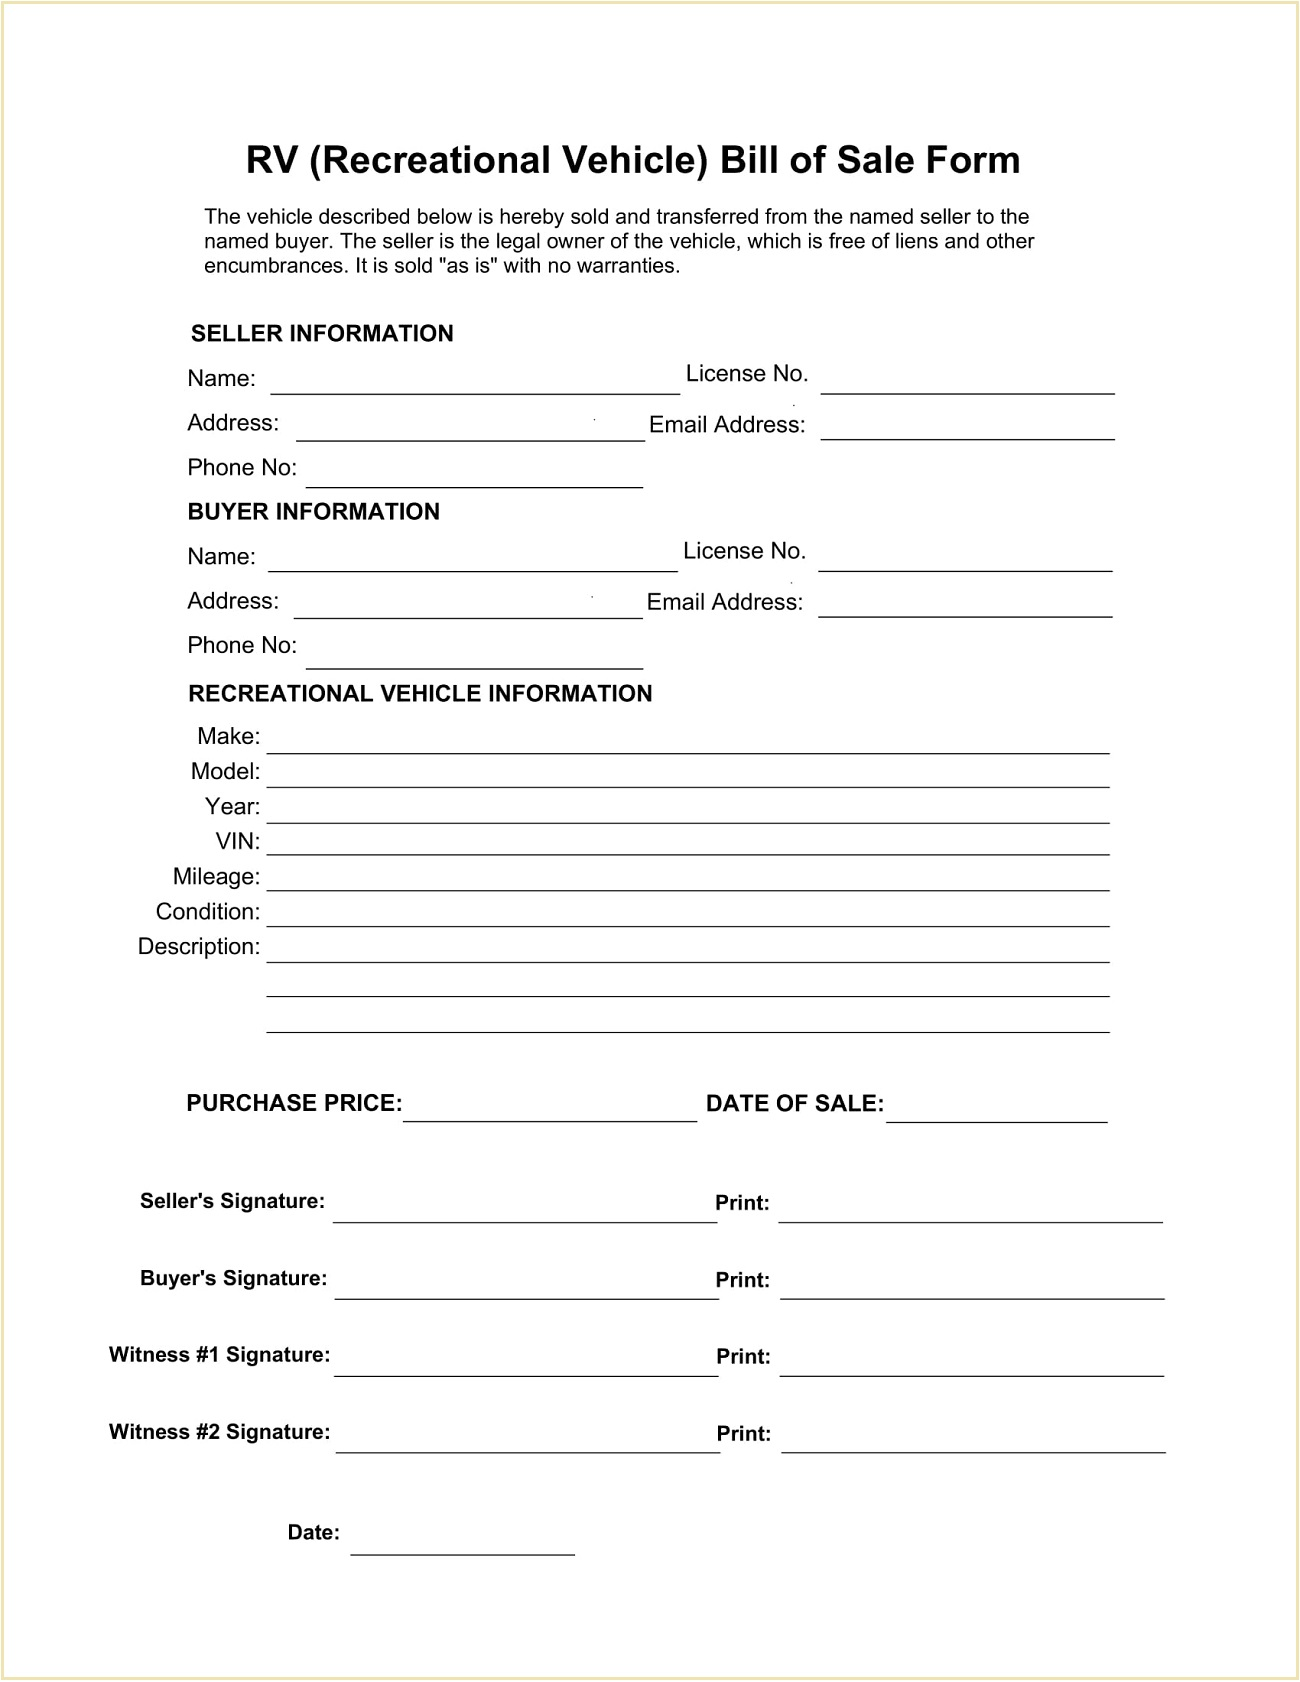 Recreational Vehicle (RV) Bill of Sale Form Template PDF